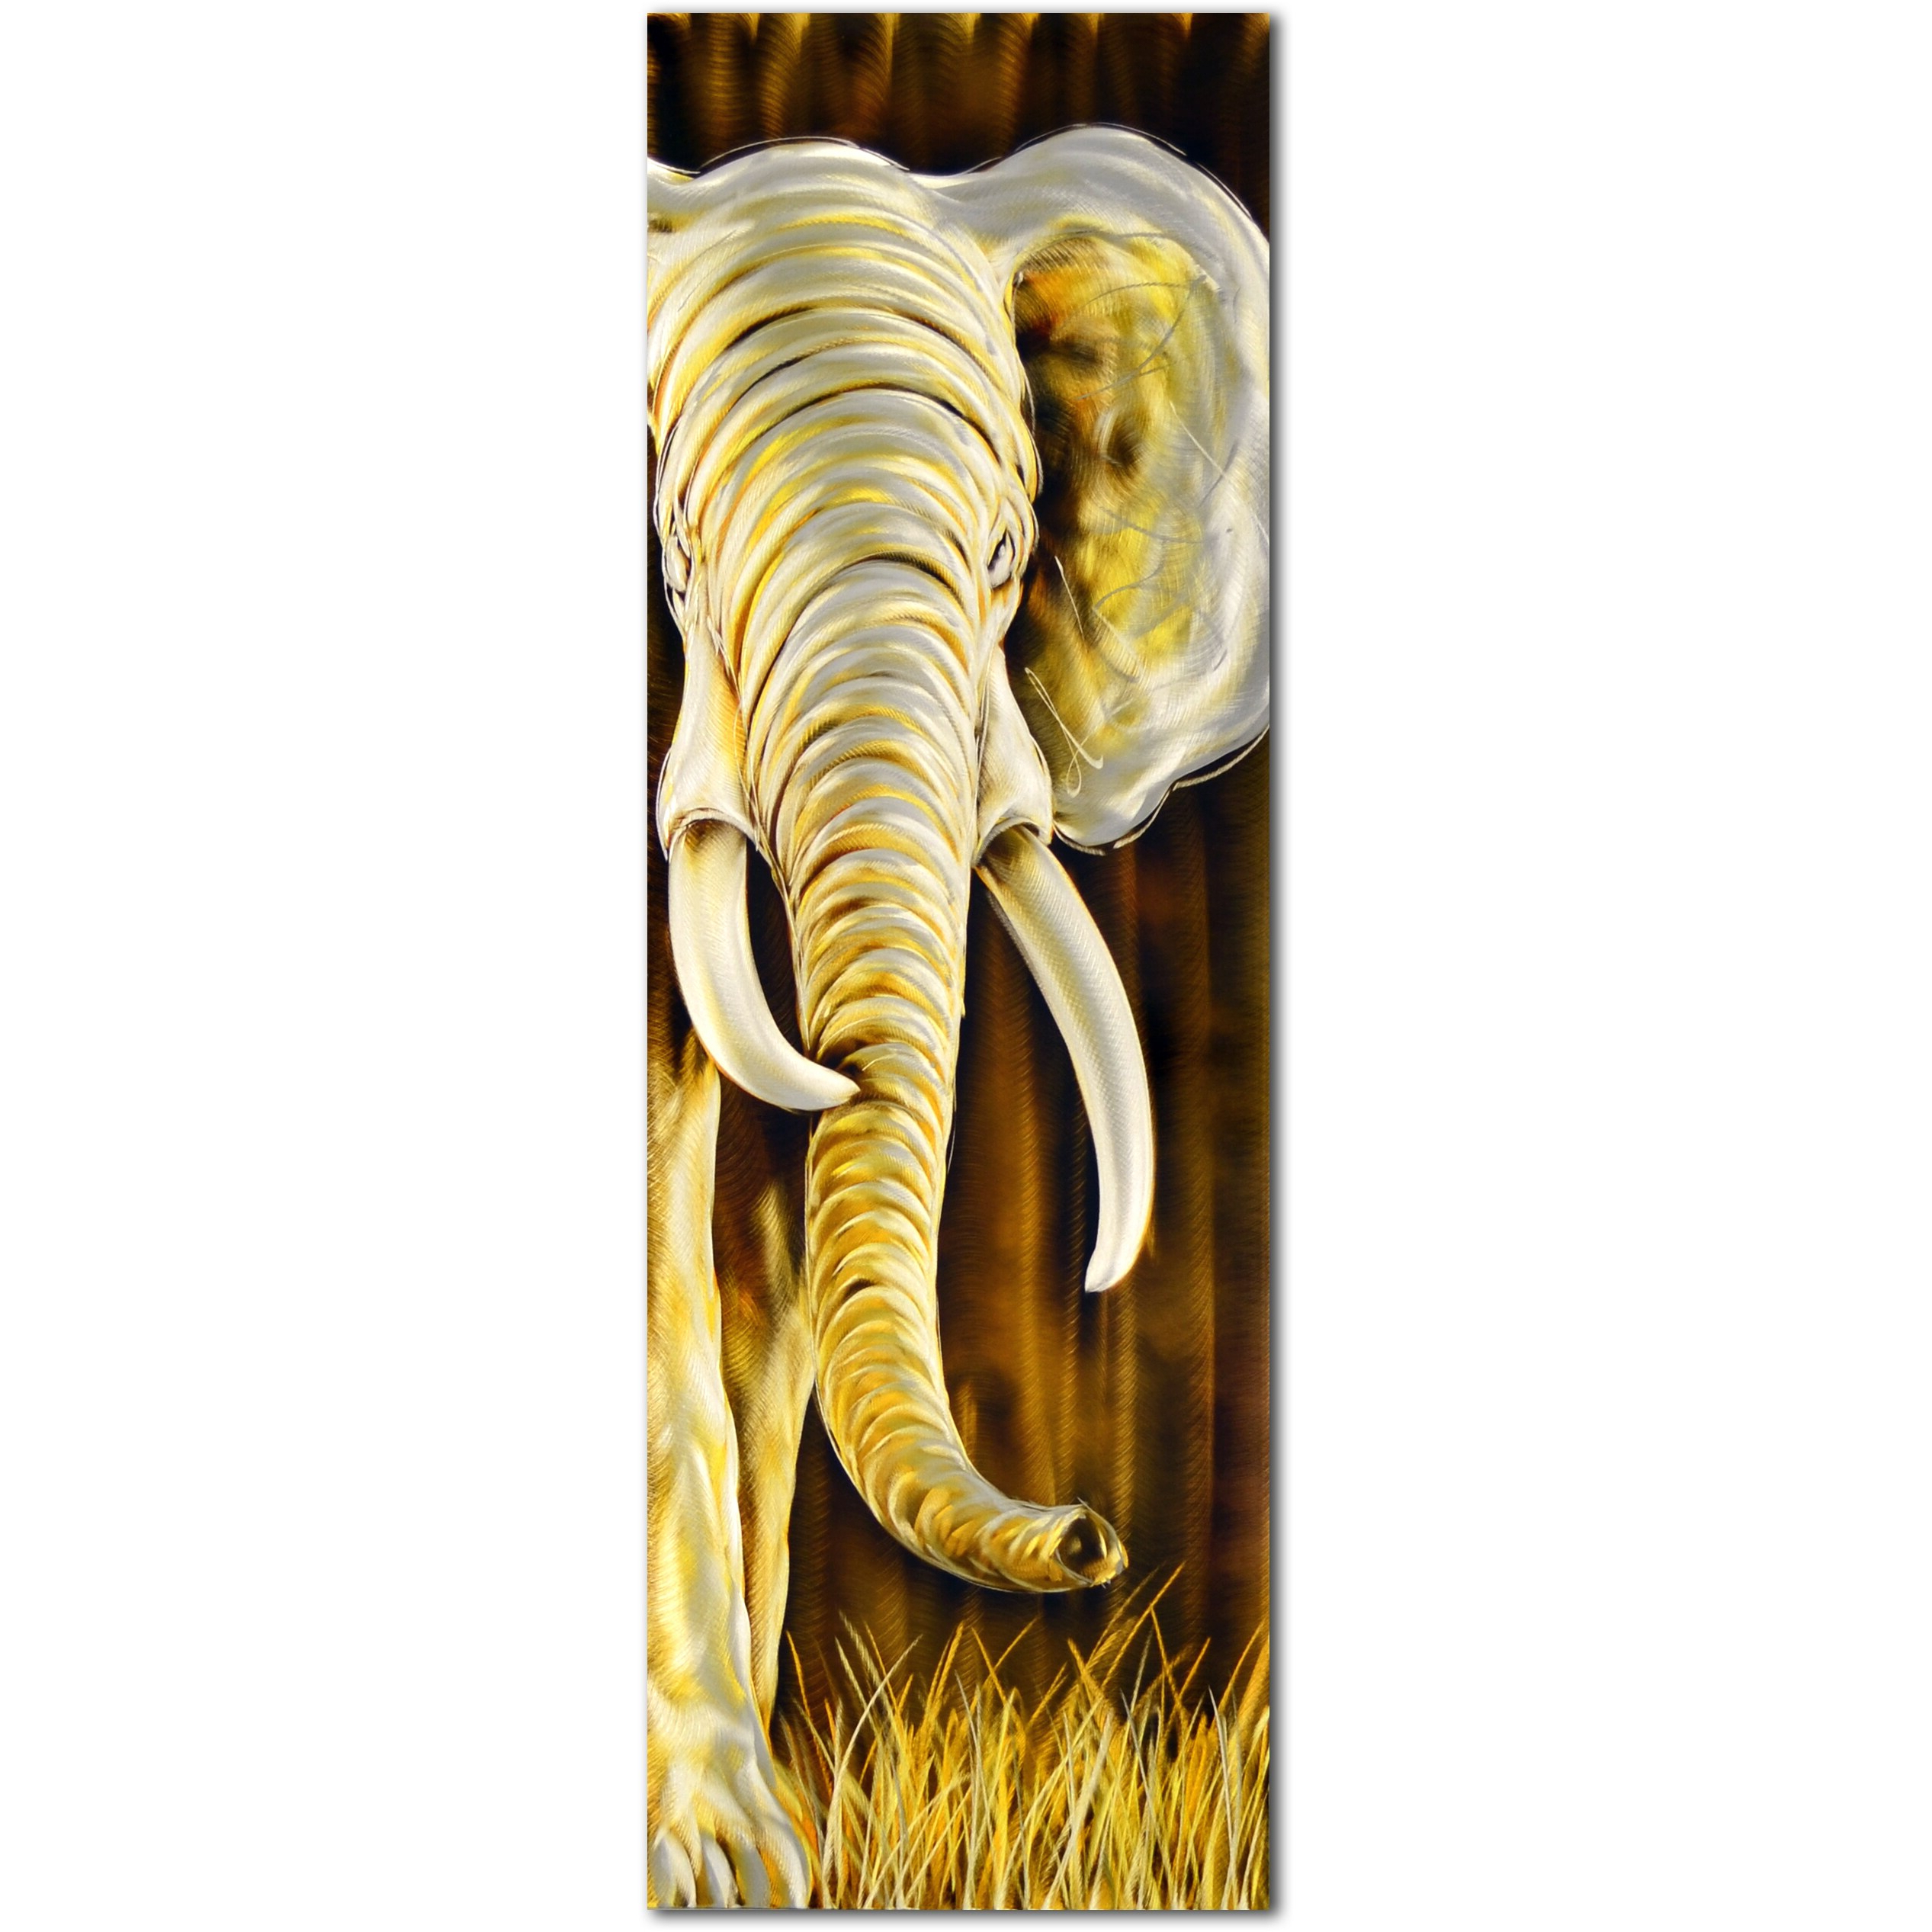 Popular Gold And White Elephants Delight Handmade Metal Wall Art Sculpture With Gold Elephants Sculpture Wall Décor (View 16 of 20)